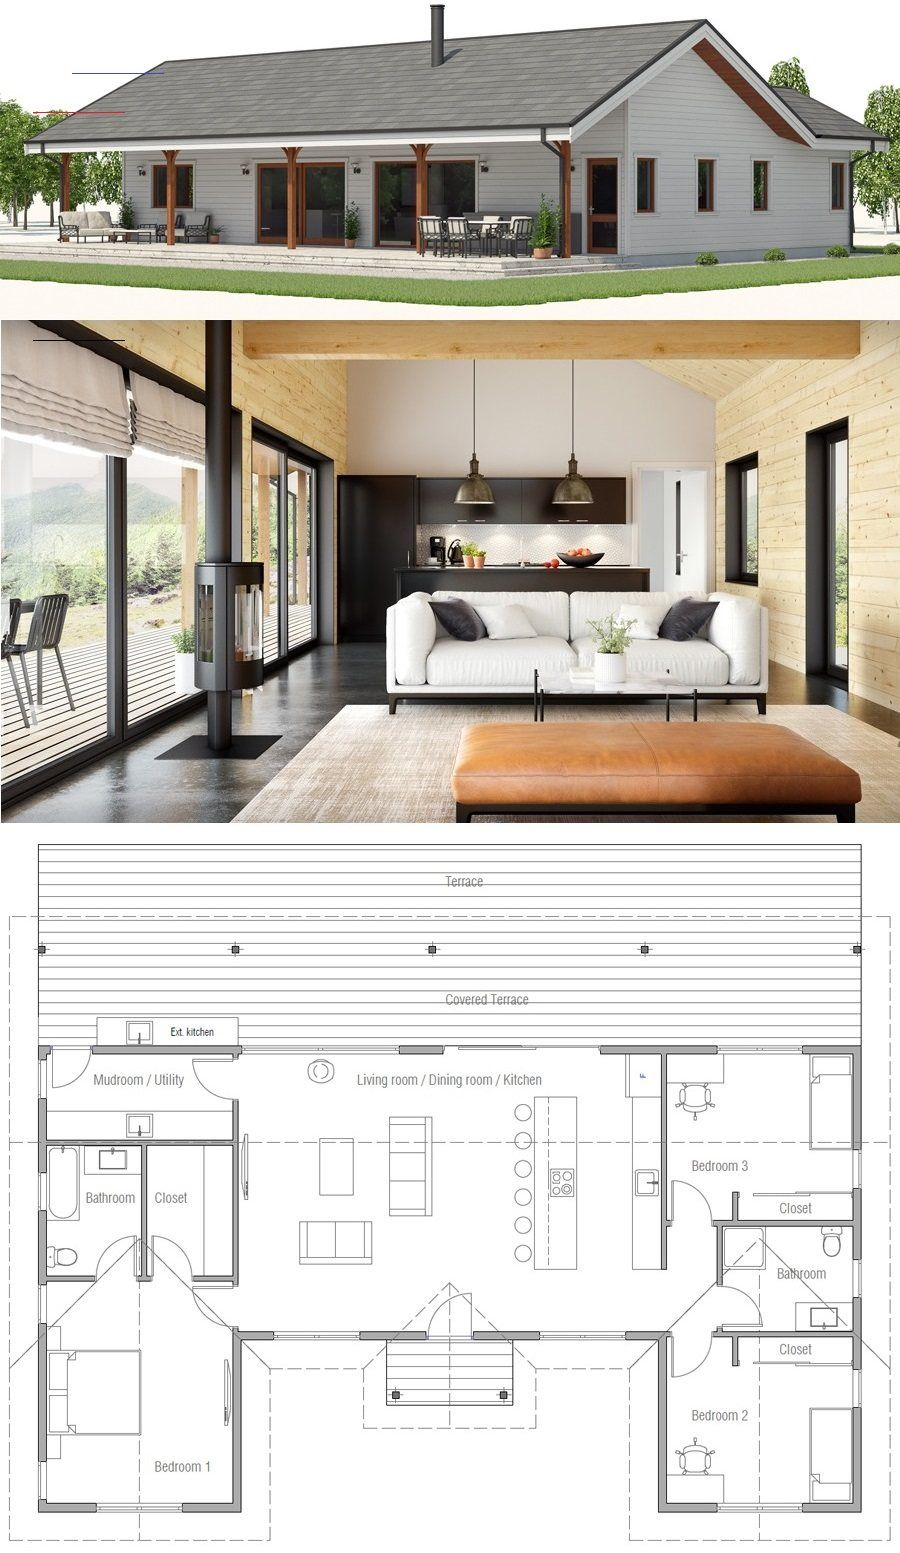 Pin By Kai Moishe On Home New House Plans House Plans Farmhouse Small House Plans